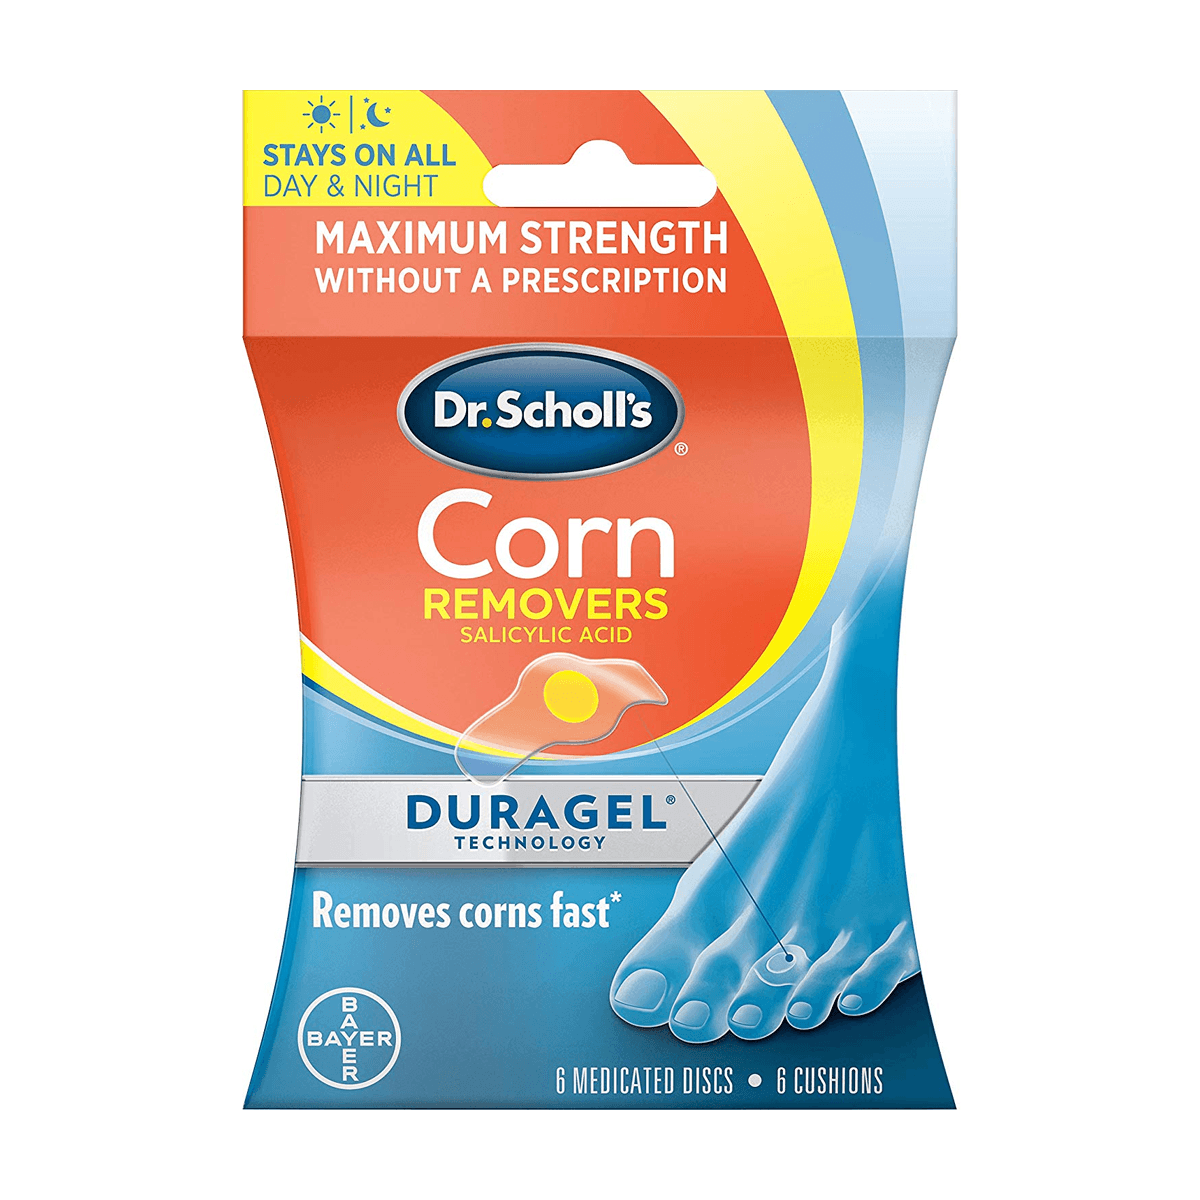 Dr. Scholl's CORN REMOVER (1)